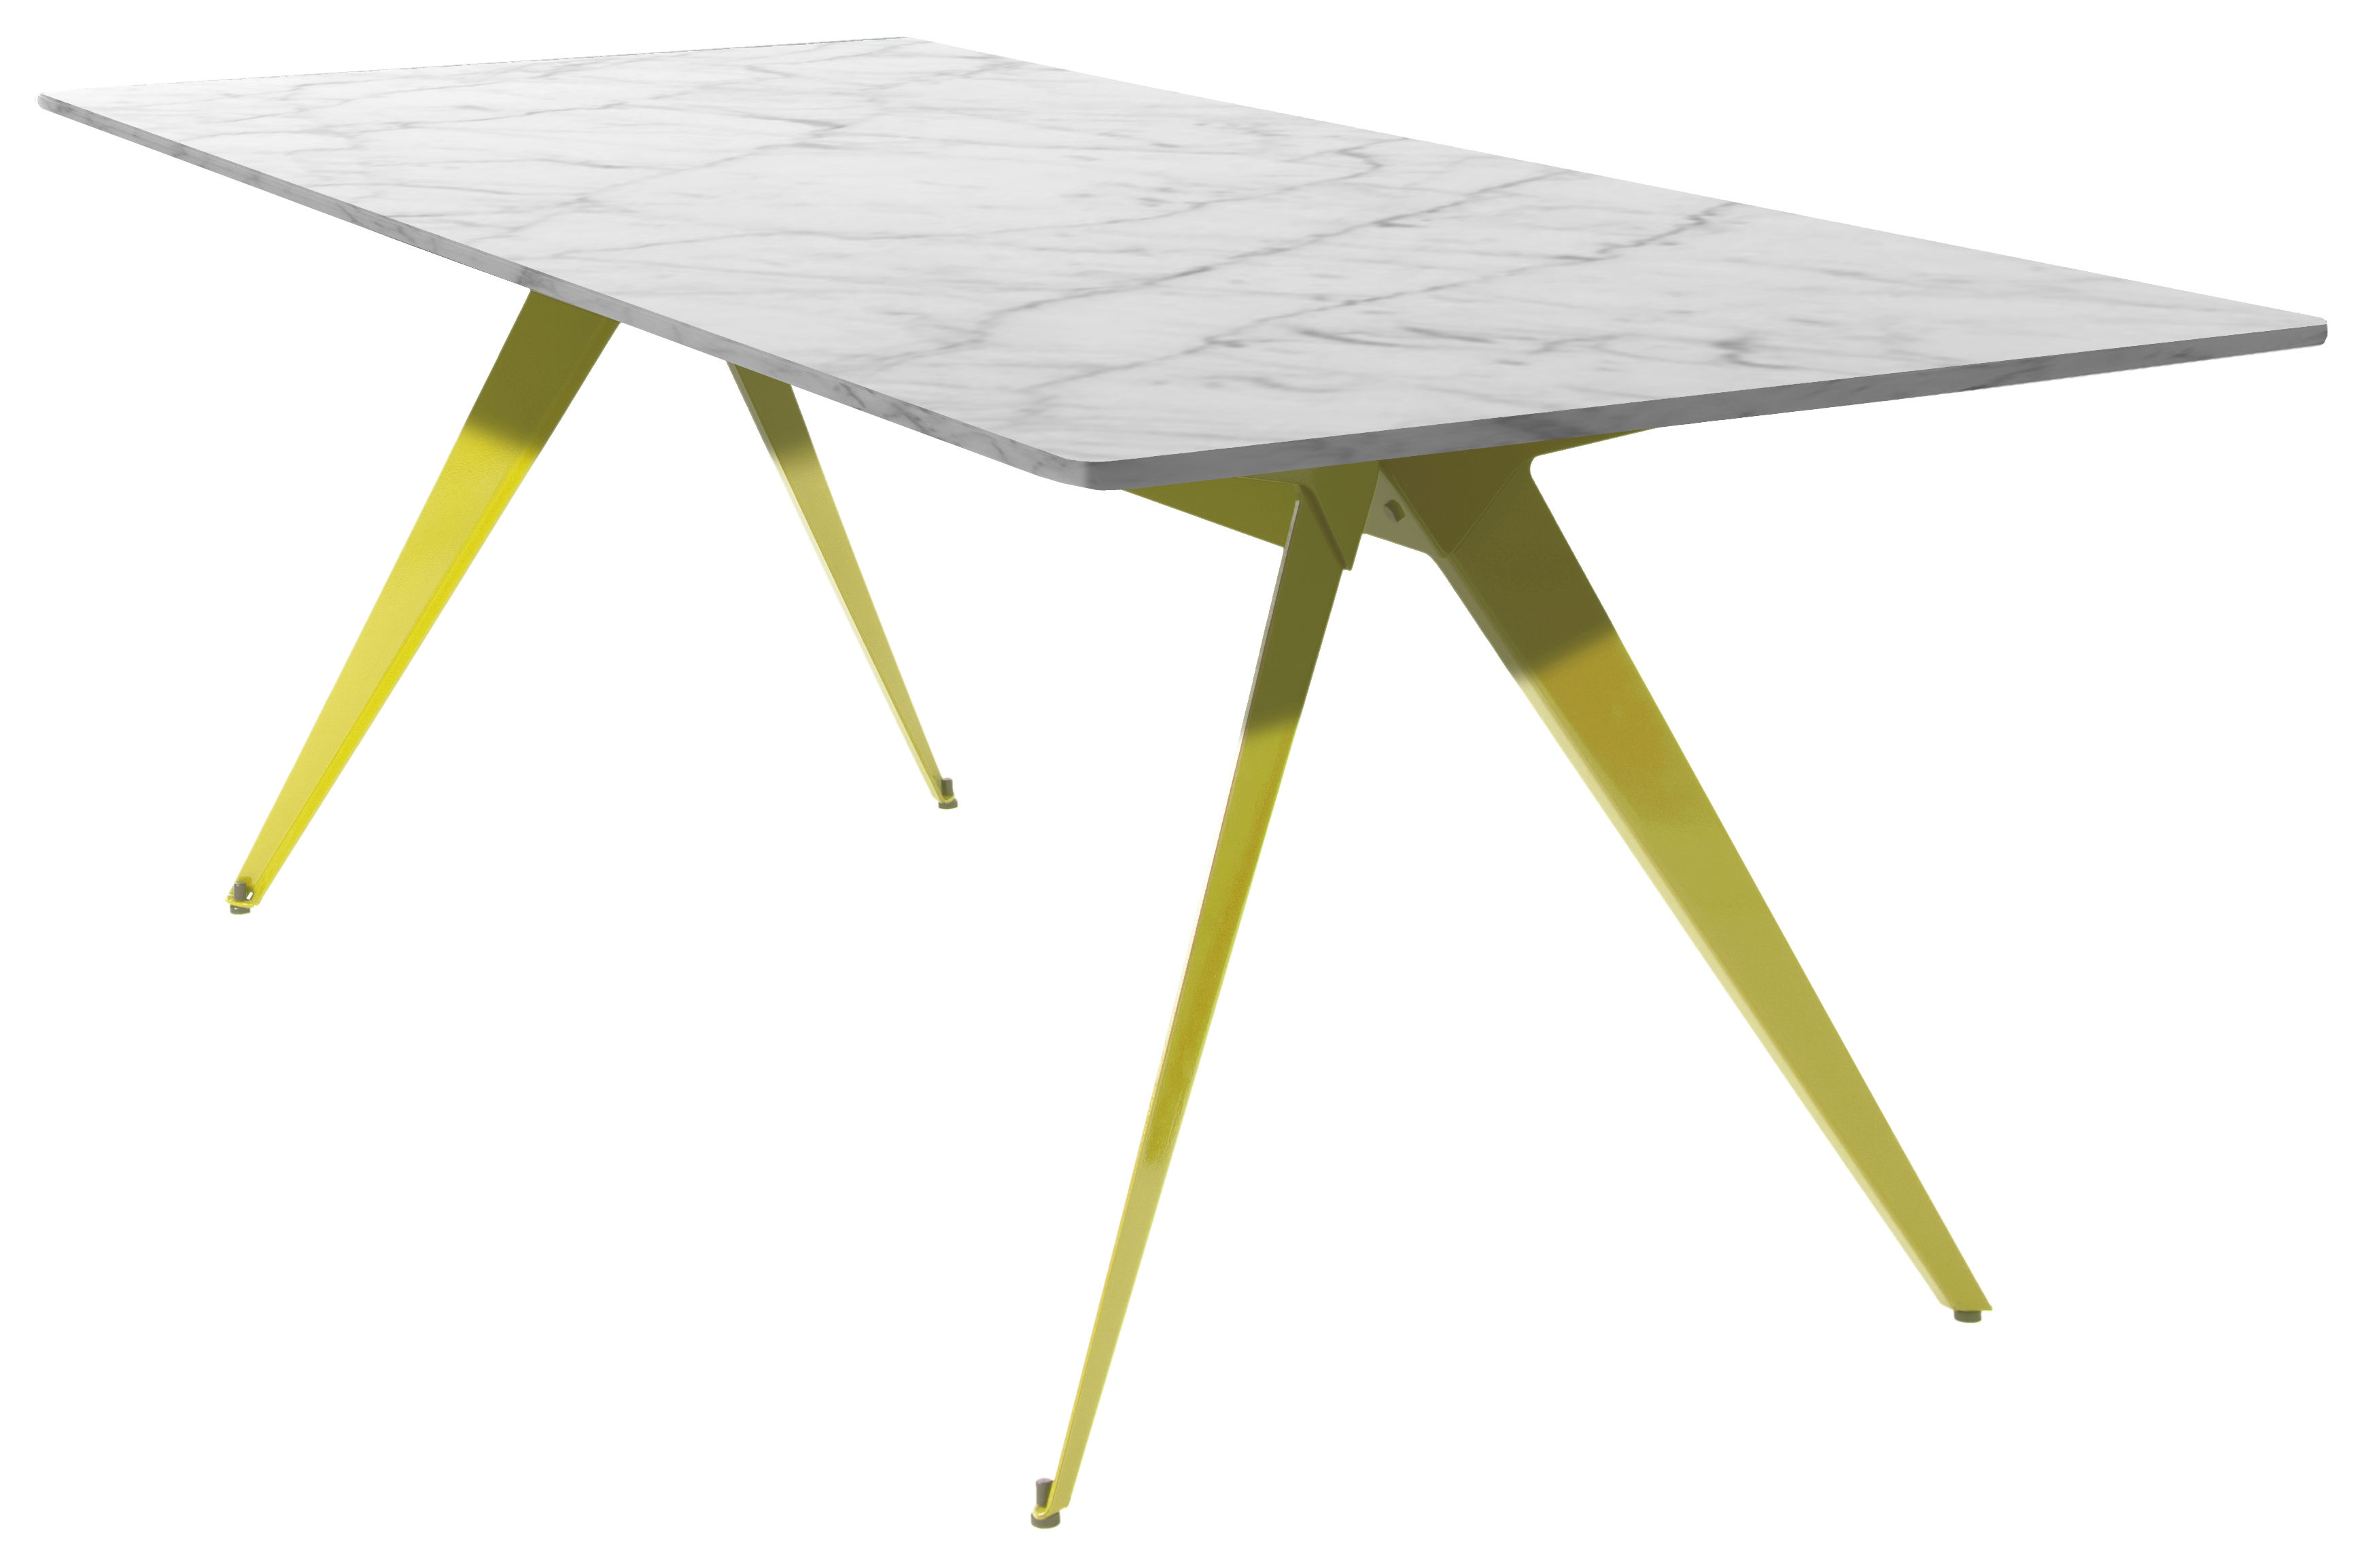 table stern marbre 220 x 90 cm pied jaune souffre plateau marbre blanc marcel by. Black Bedroom Furniture Sets. Home Design Ideas